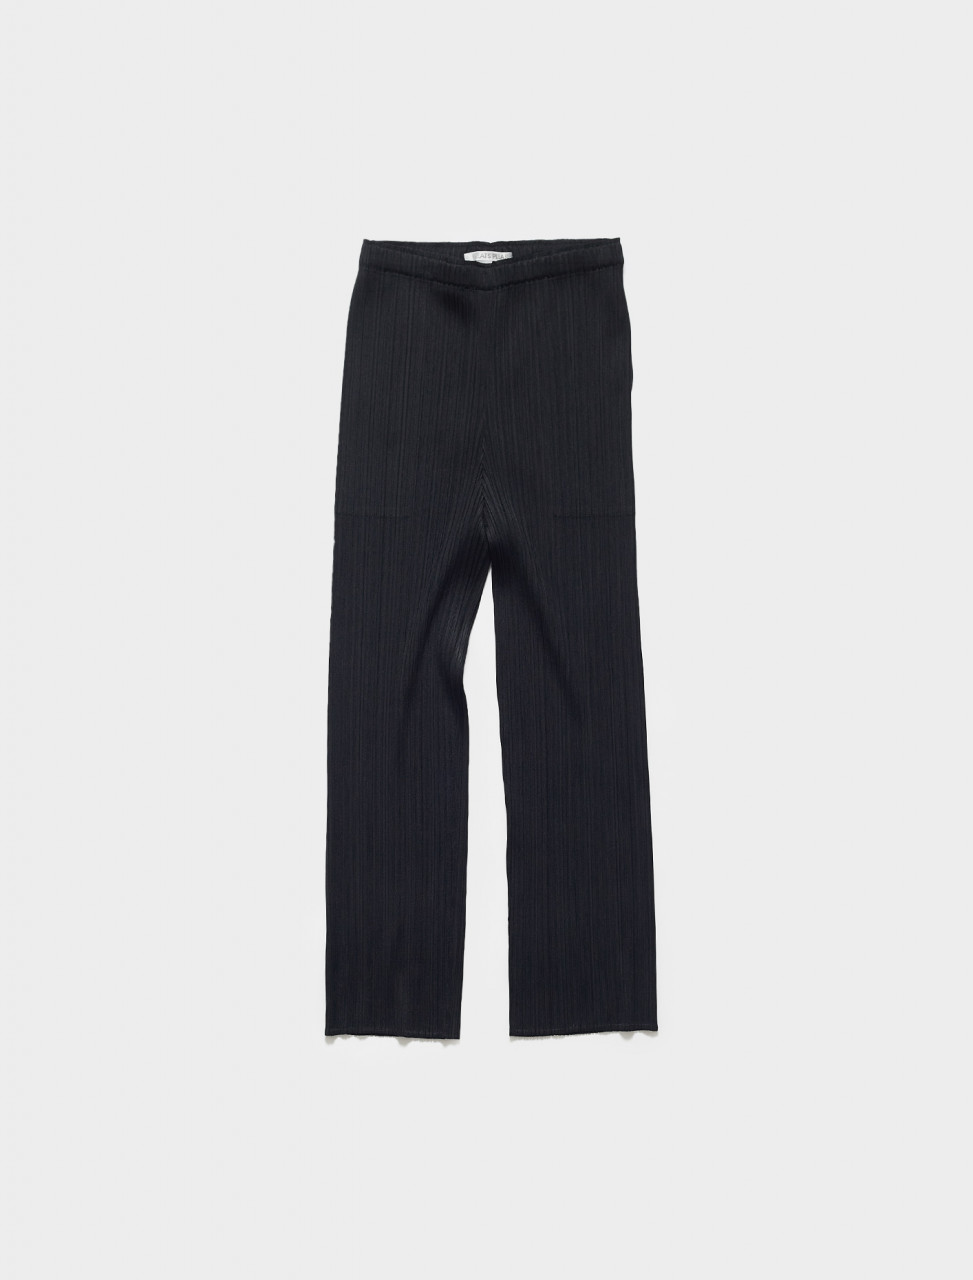 PP16JF111-15 PLEATS PLEASE Issey Miyake Pleated Trousers in Black